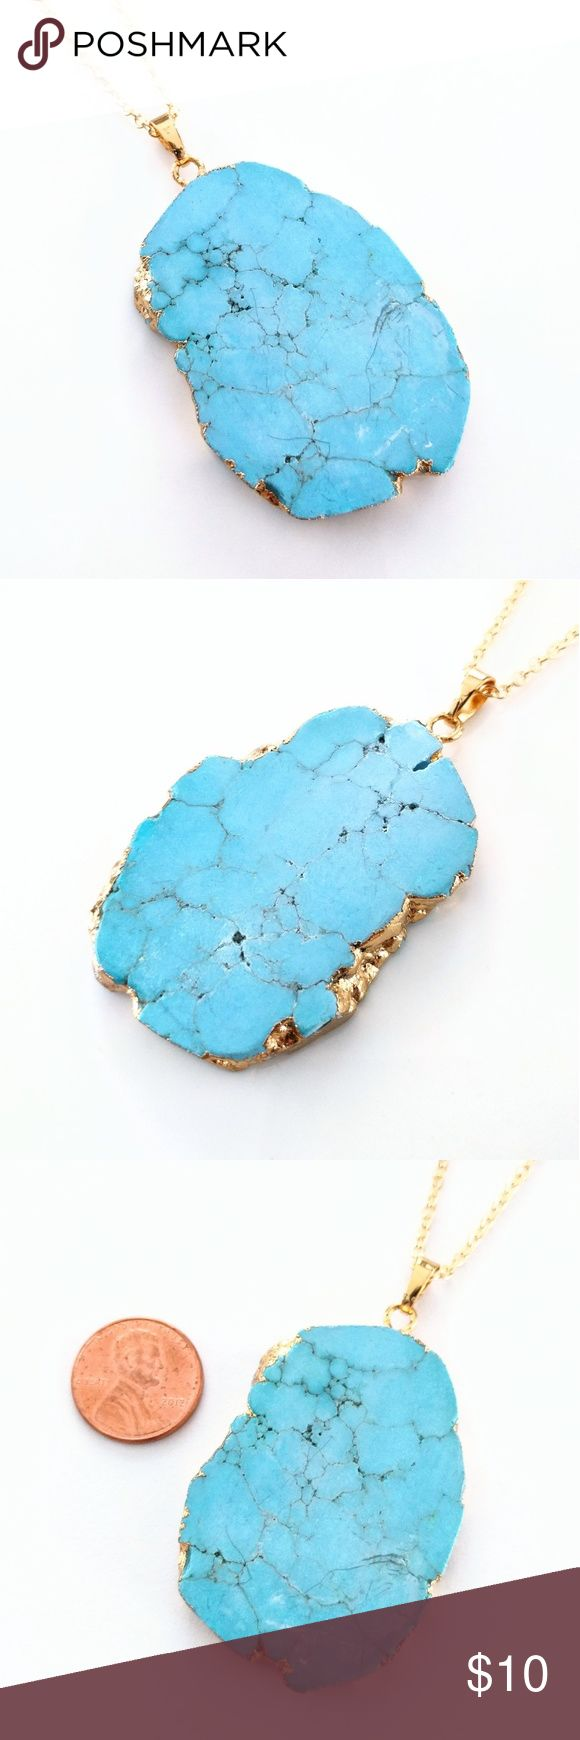 """Gold-plated turquoise howlite stone necklace True beauty in simplicity!  A gorgeous slice of gold-plated turquoise howlite stone takes center stage for a unique look you'll love!  Nickel and lead free.  Chain measures about 24"""".  PRICE IS FIRM and extremely reasonable, but click """"add to bundle"""" to save 10% on your purchase of 2+ items today! Jewelry Necklaces"""